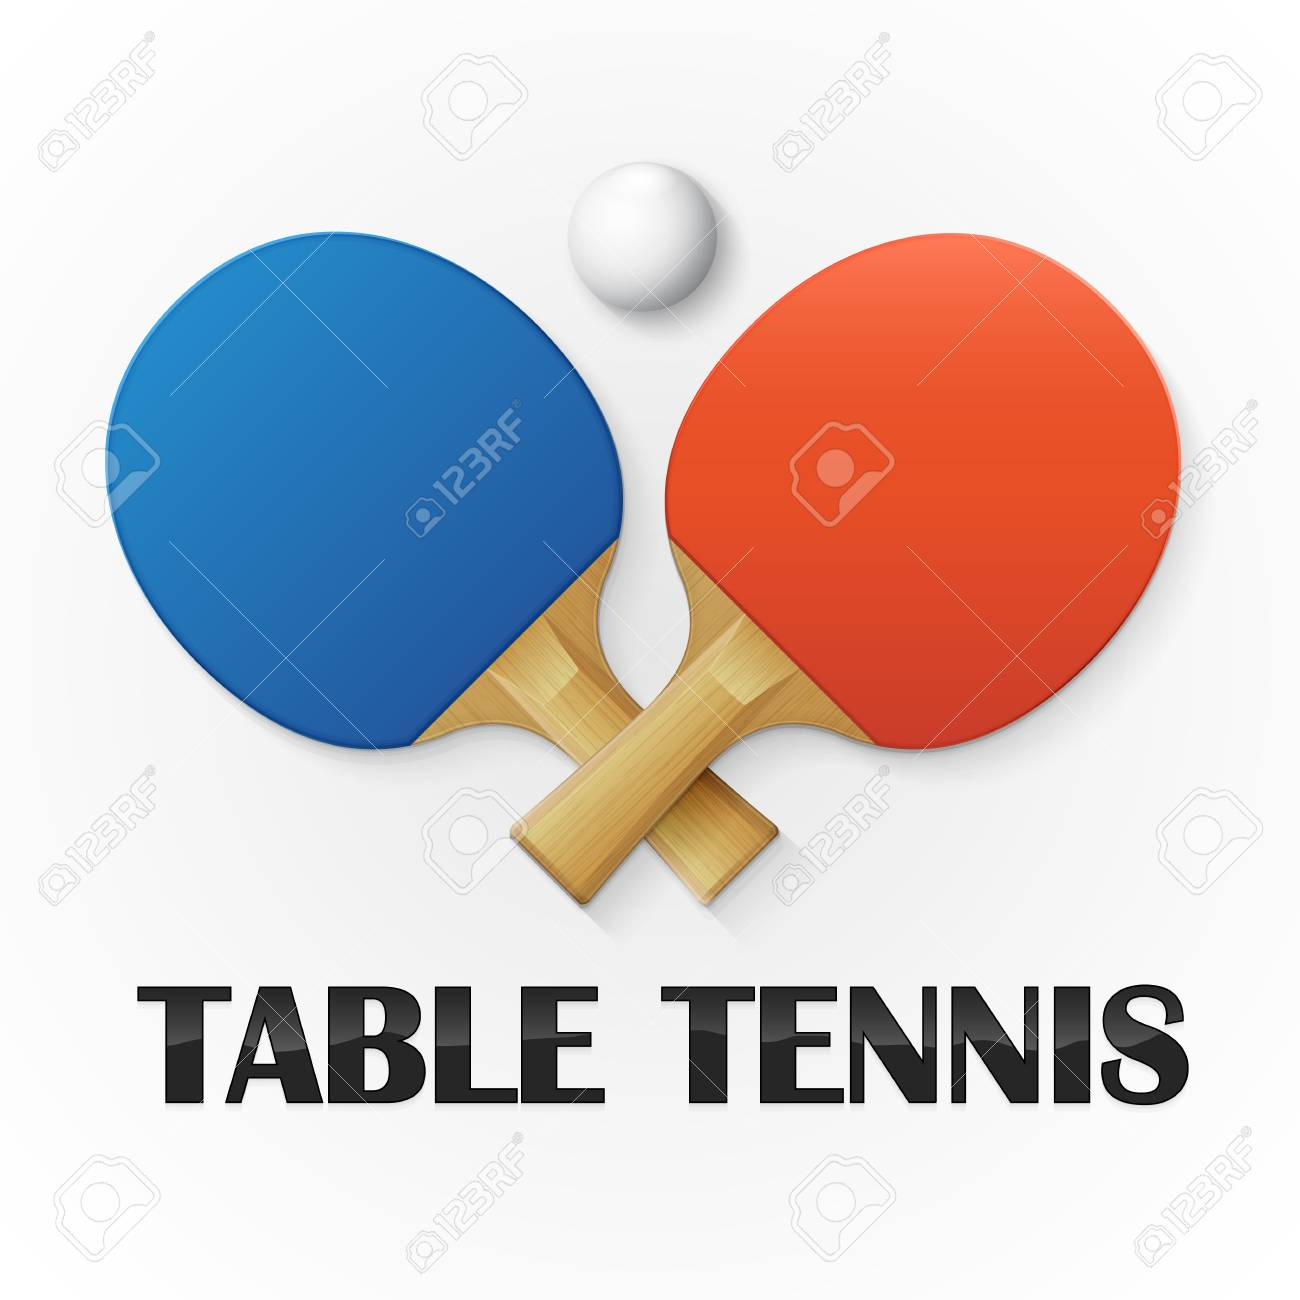 Table tennis background. Vector illustration - 85114541